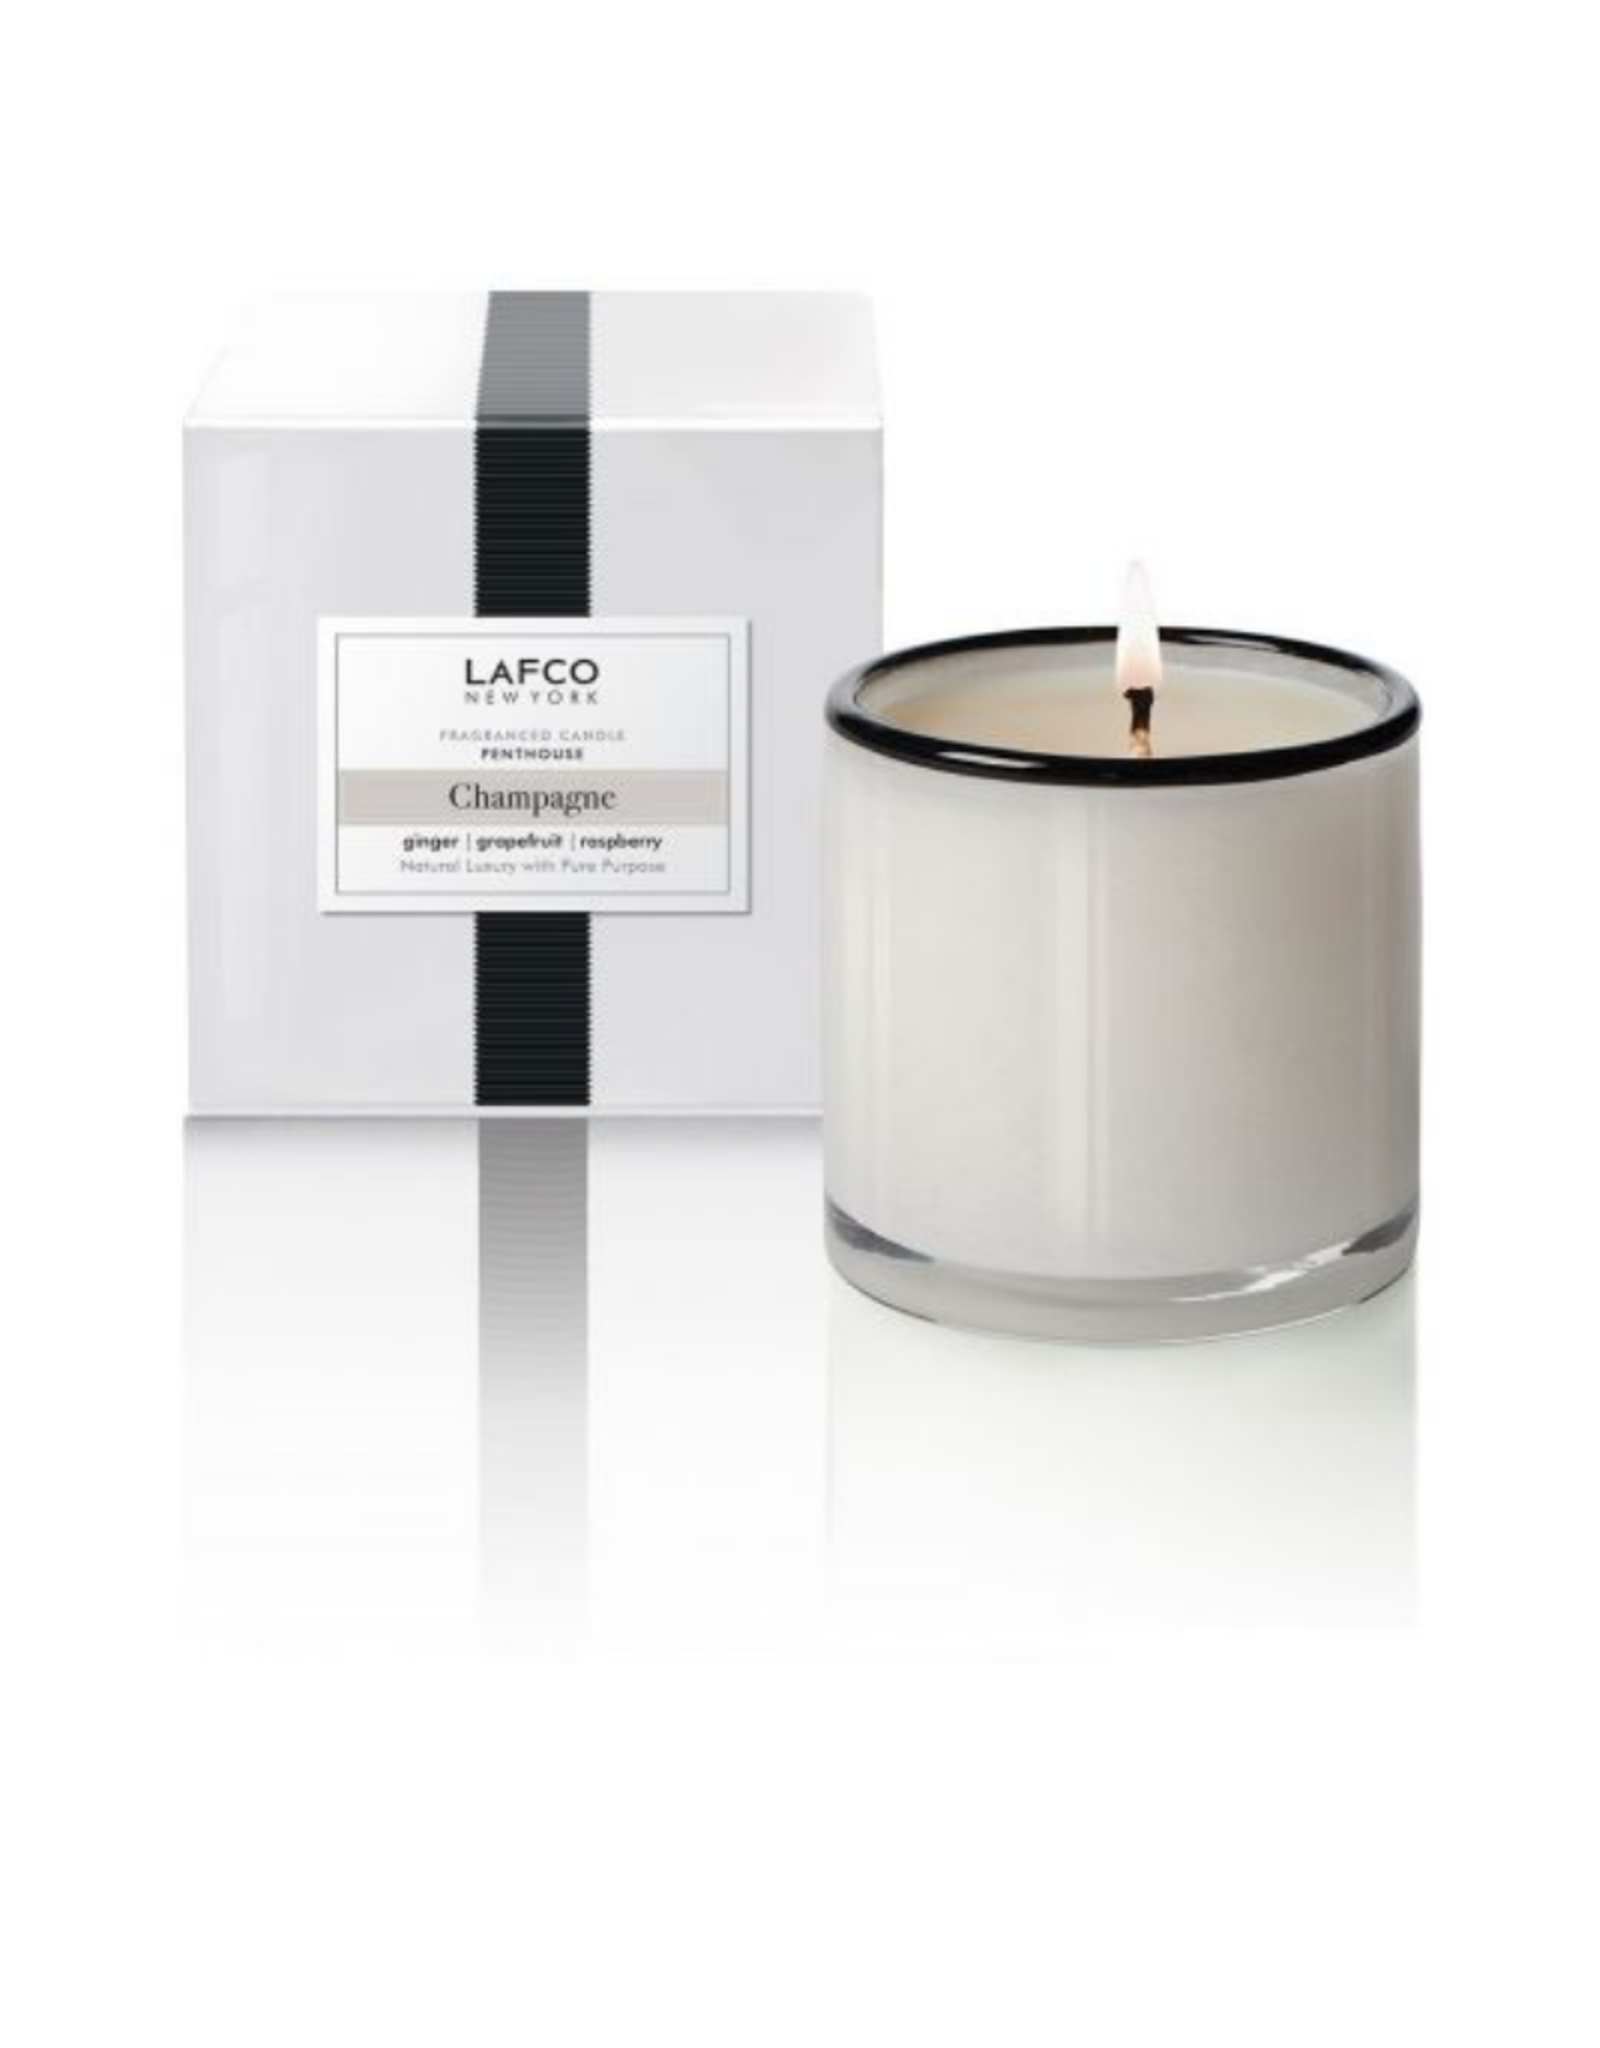 Lafco Lafco Penthouse Champagne Candle